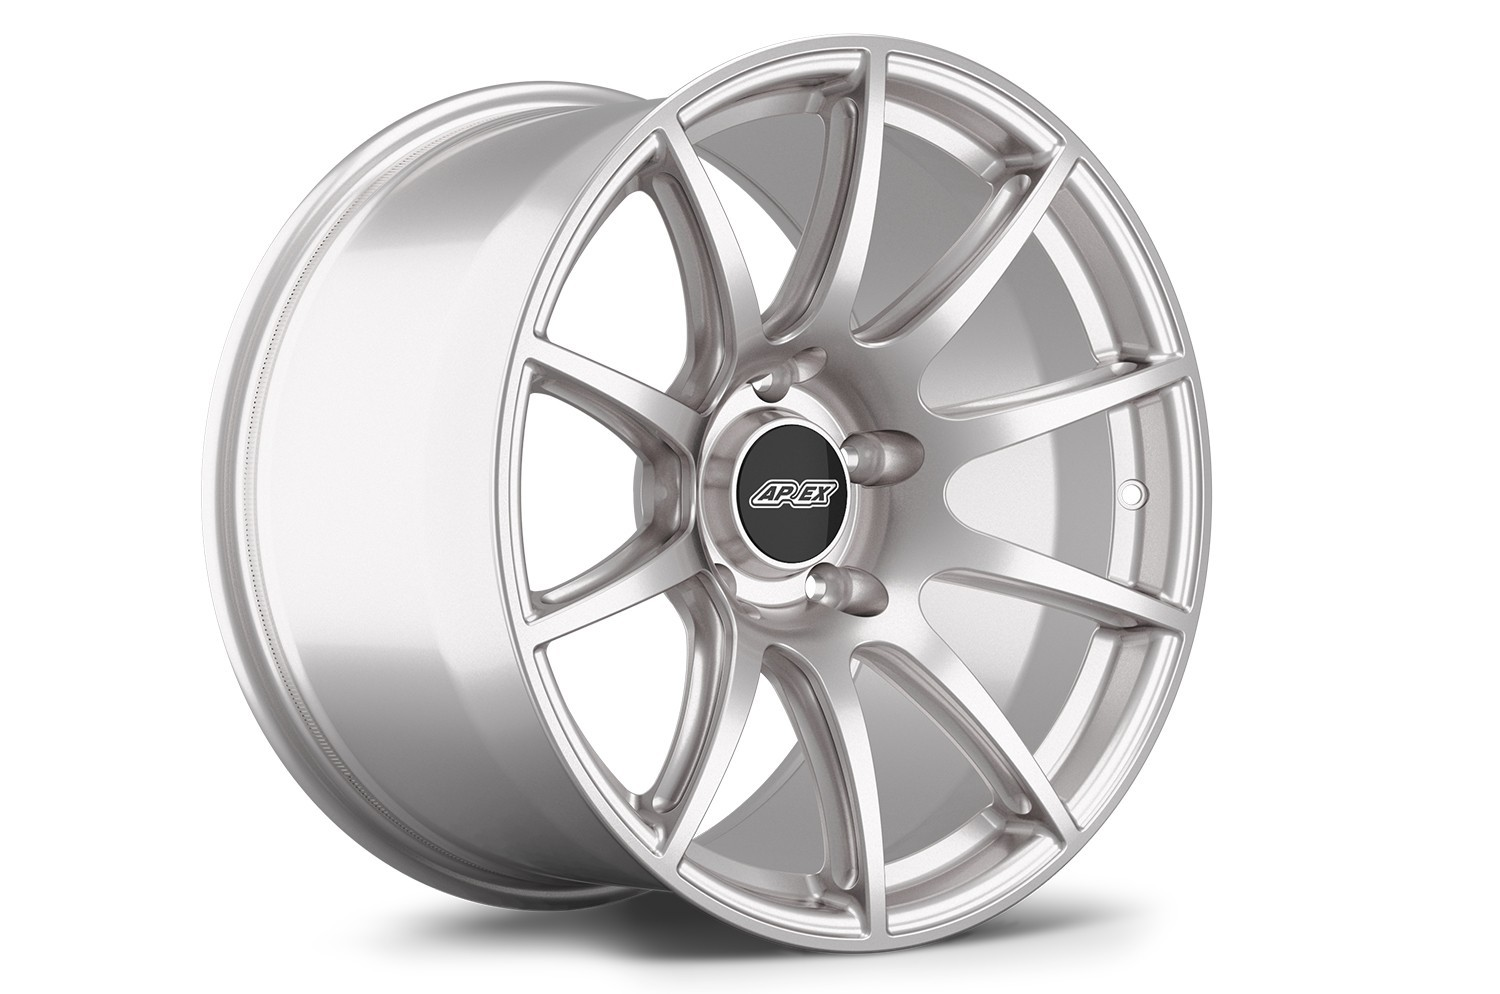 SM-10 in Race Silver finish